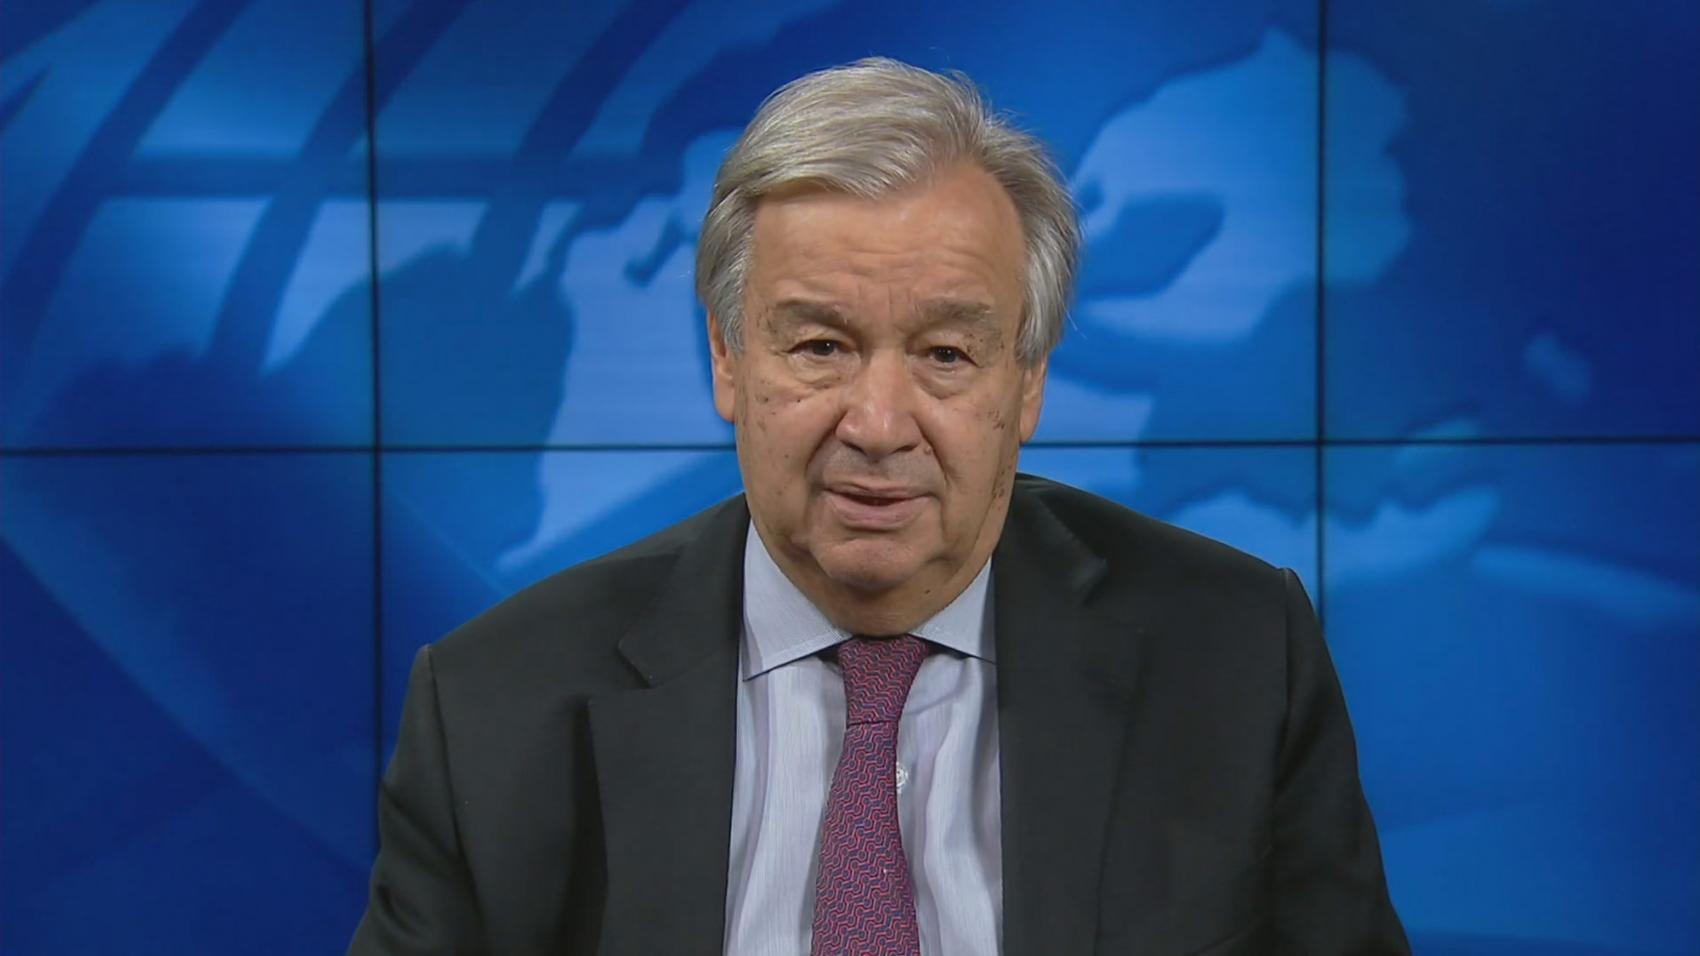 António Guterres: Video Message to the Executive Council of the World Tourism Organization